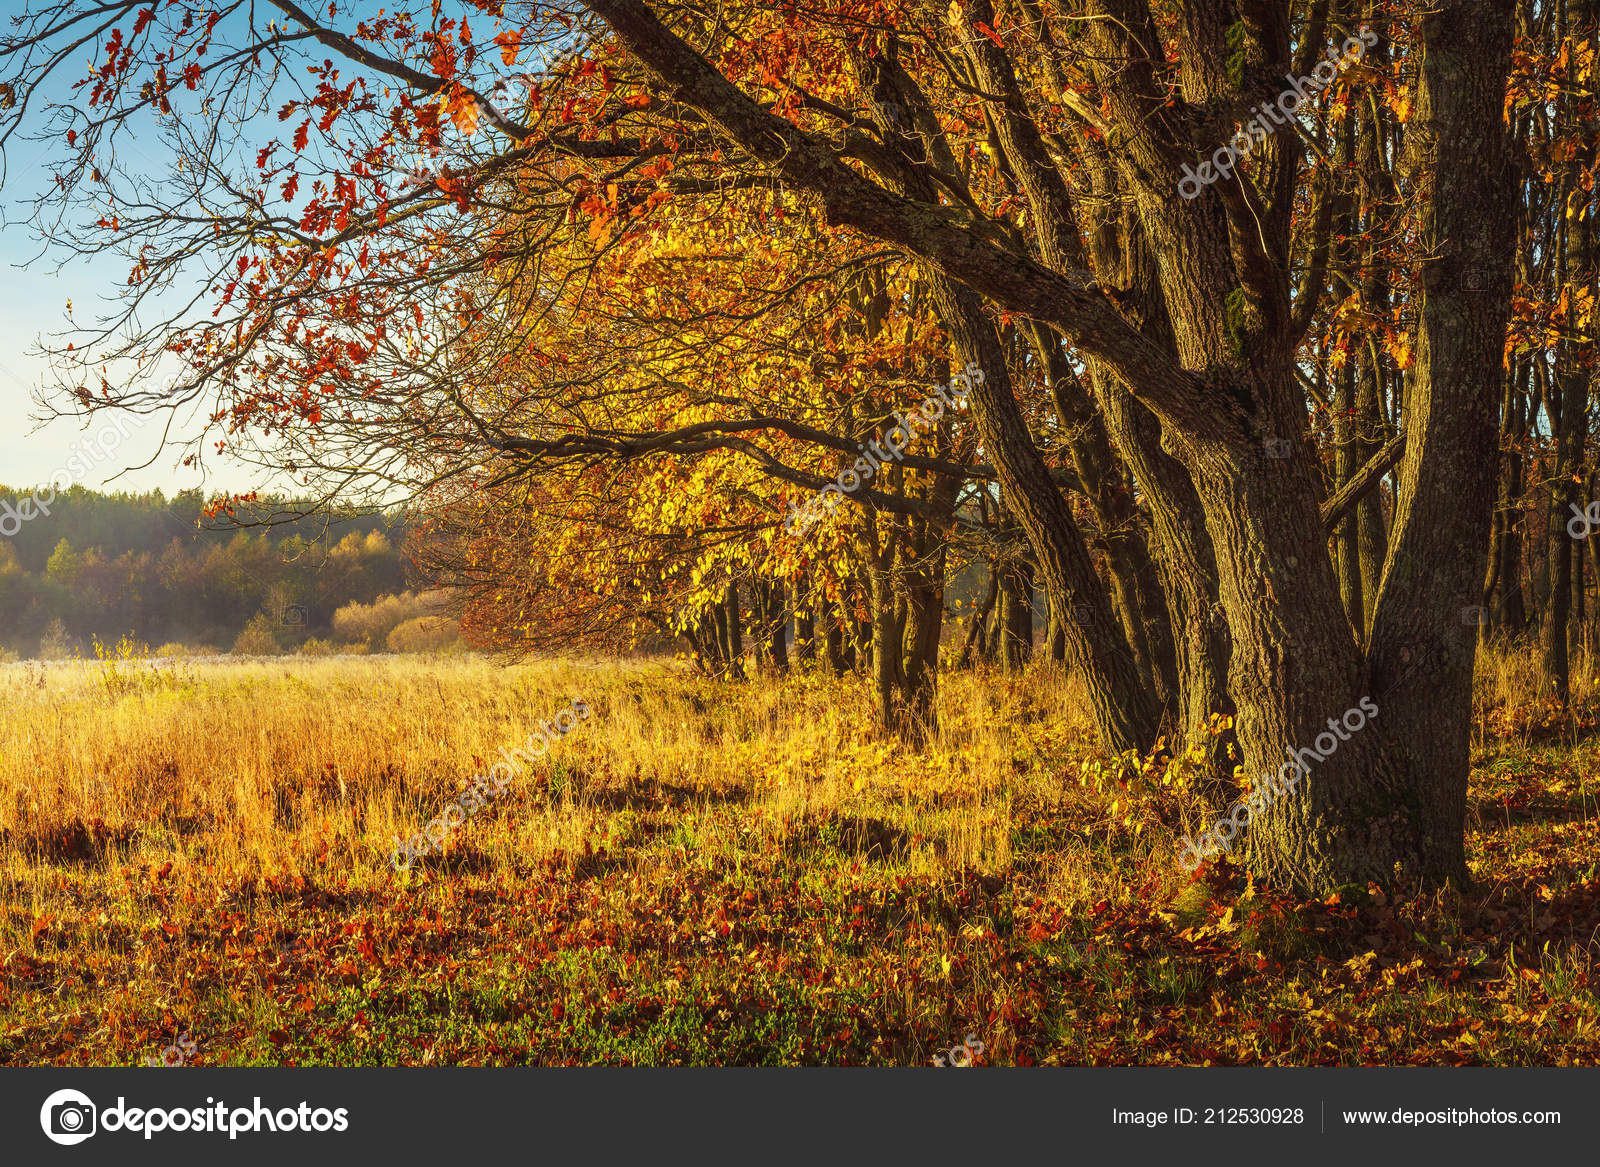 Fall Scenery Backgrounds Scenery Autumn Background Amazing View On Wild Autumn Nature Yellow Trees On Golden Meadow Beautiful Landscape Of Colorful October On Sunny Day Fall Stock Photo C Dzmitrock87 Gmail Com